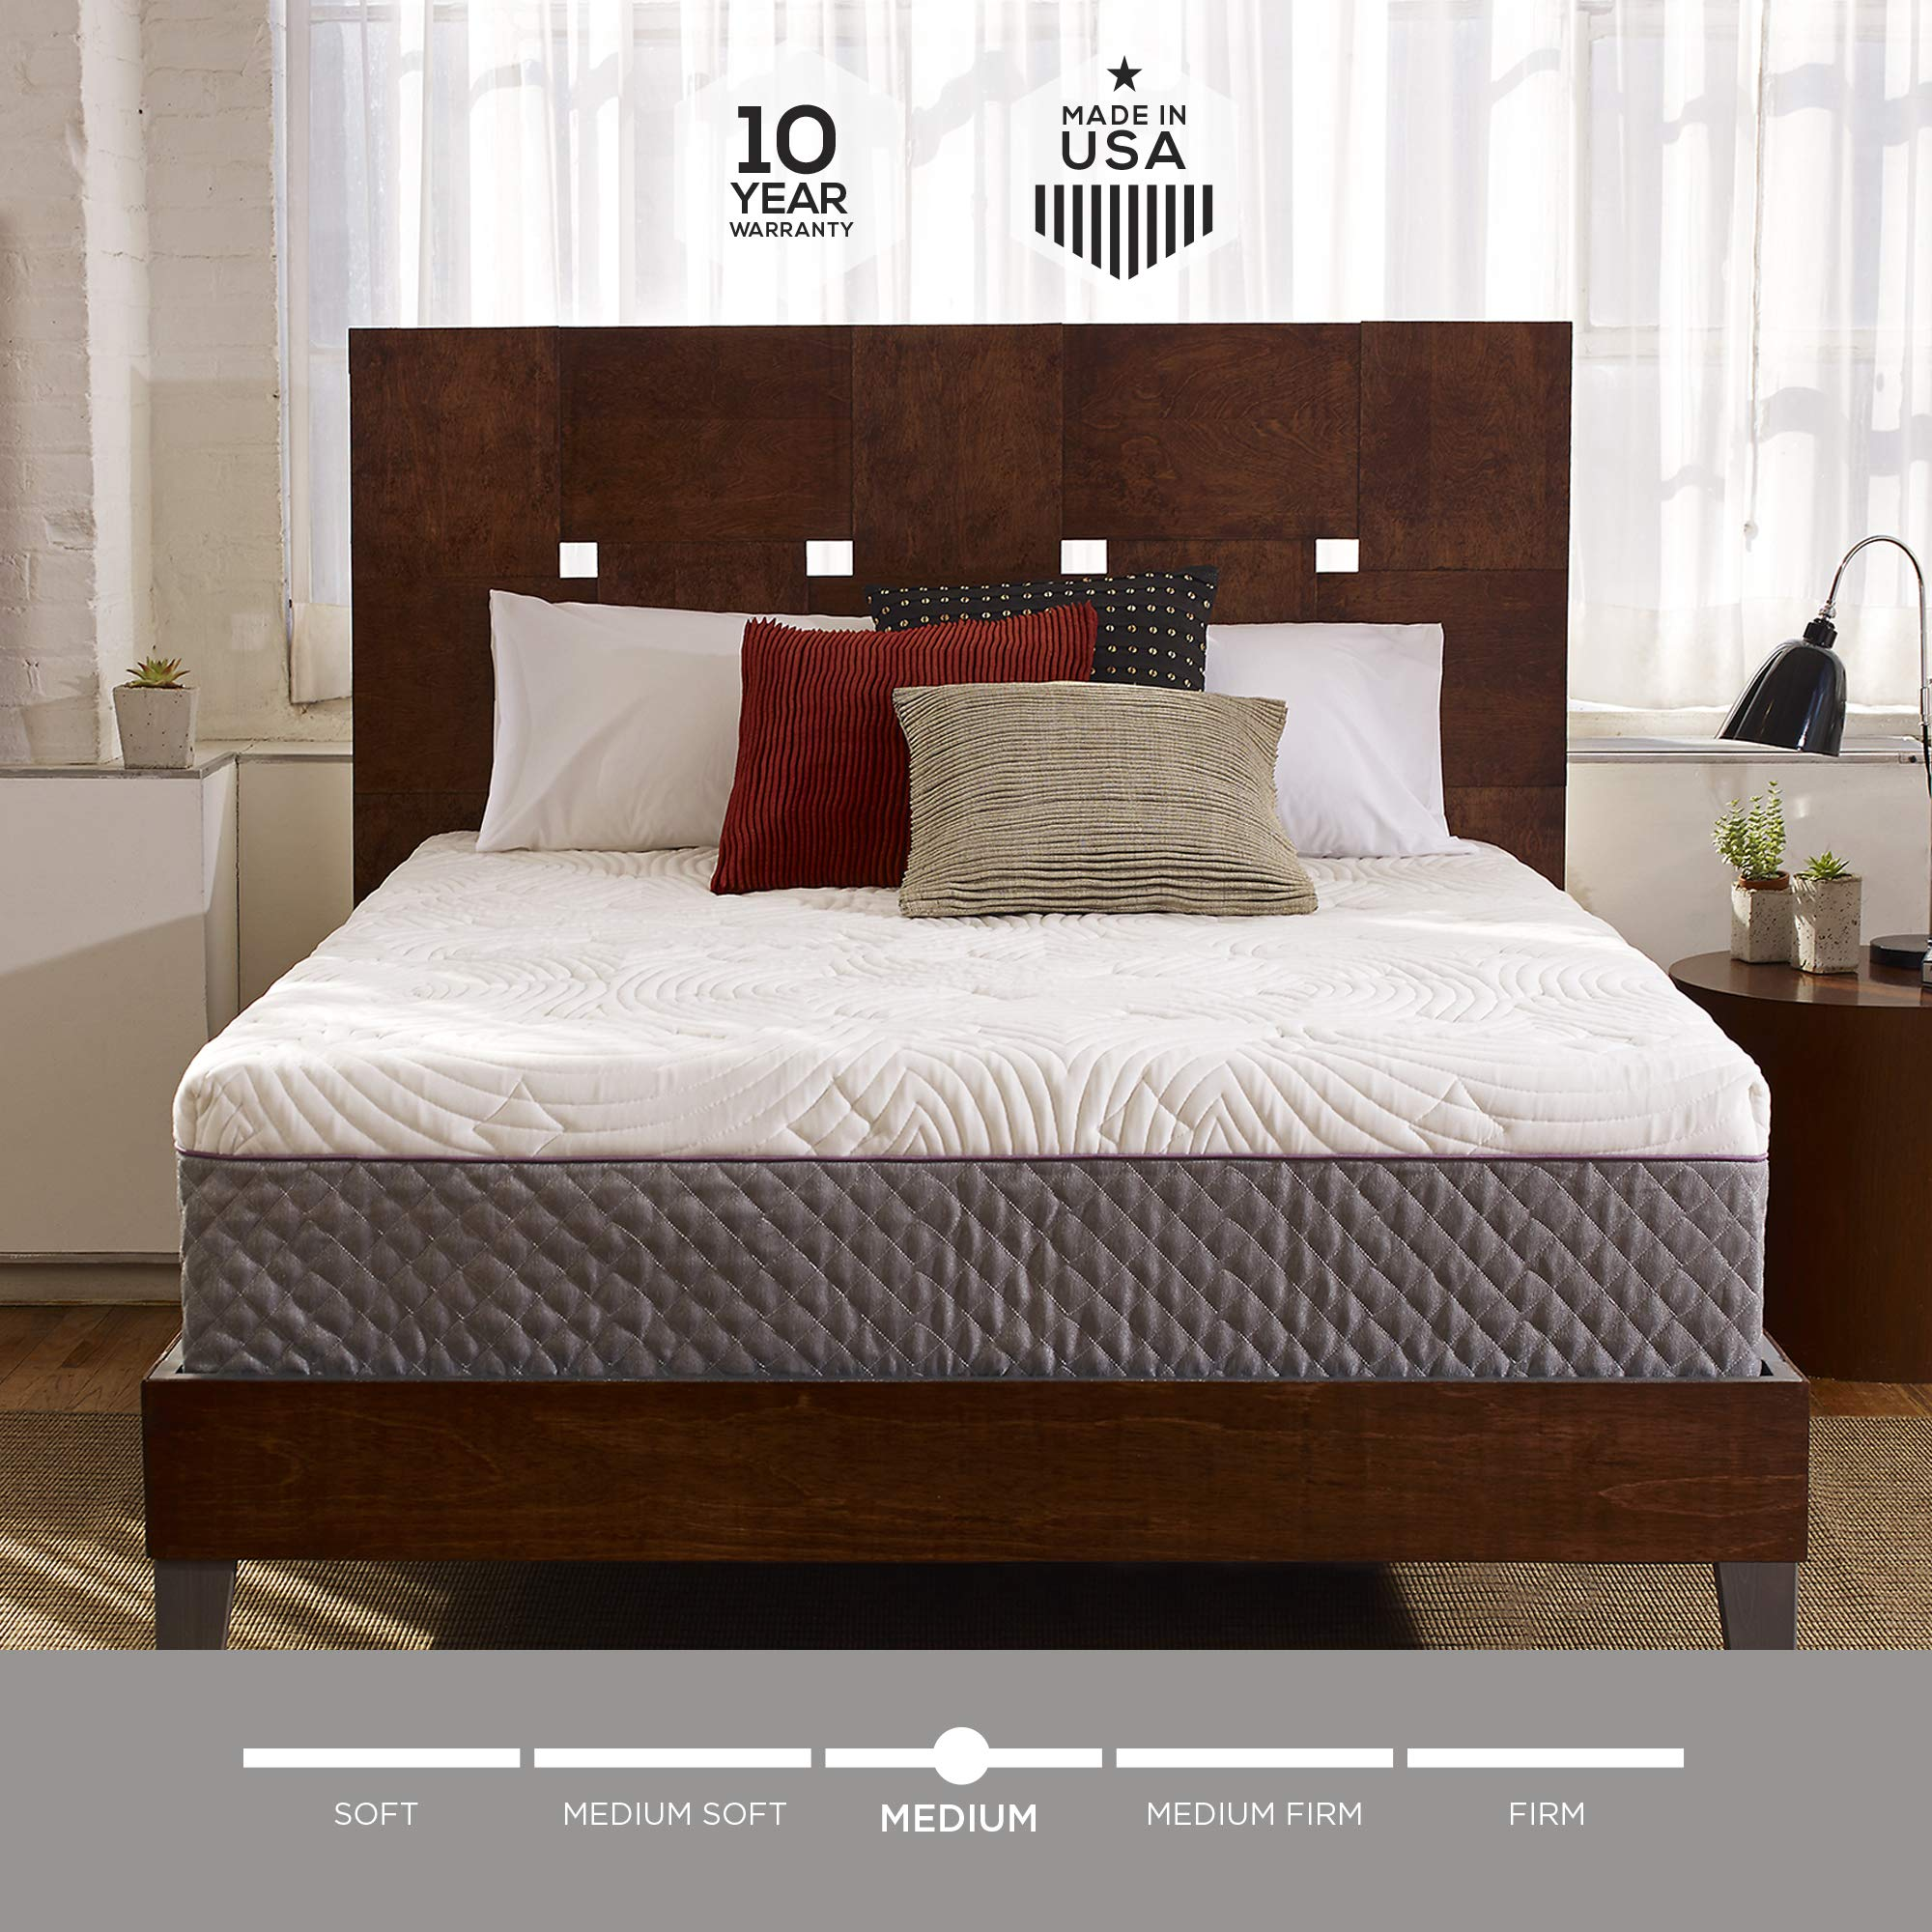 Sleep Innovations Shiloh 12-inch Memory Foam Mattress, Bed in a Box, Quilted Cover, Made in The USA, 10-Year Warranty - Queen Size by Sleep Innovations